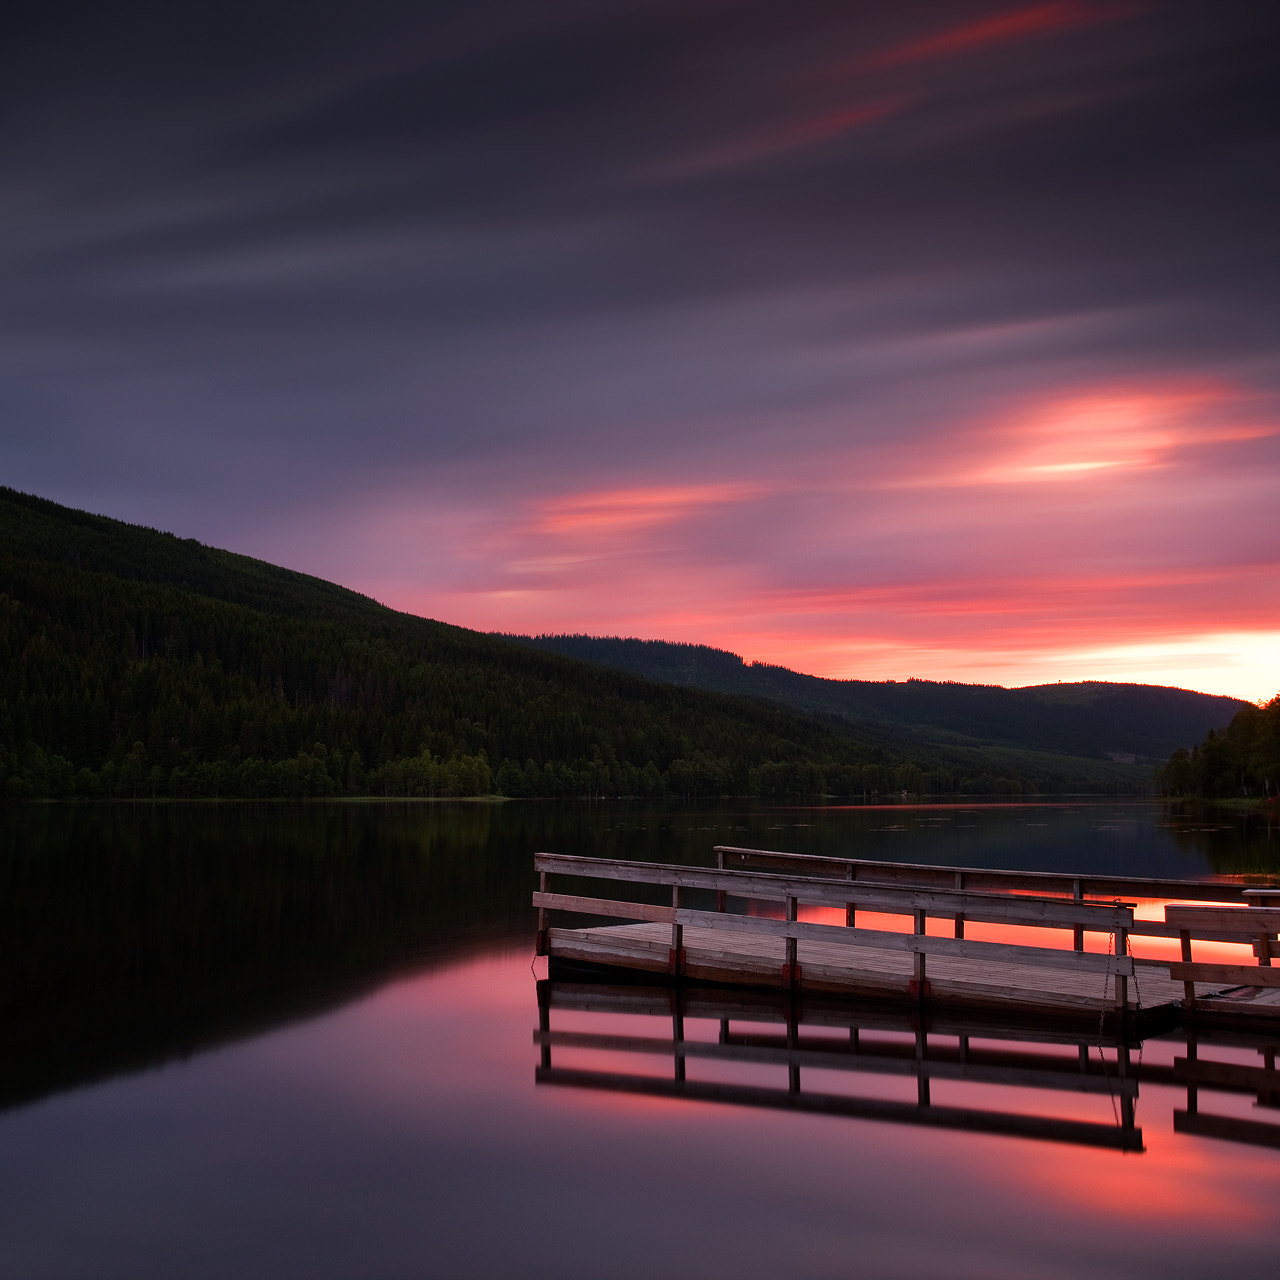 Photograph Lake Hoversjoen Sunset by Anders Naesset on 500px